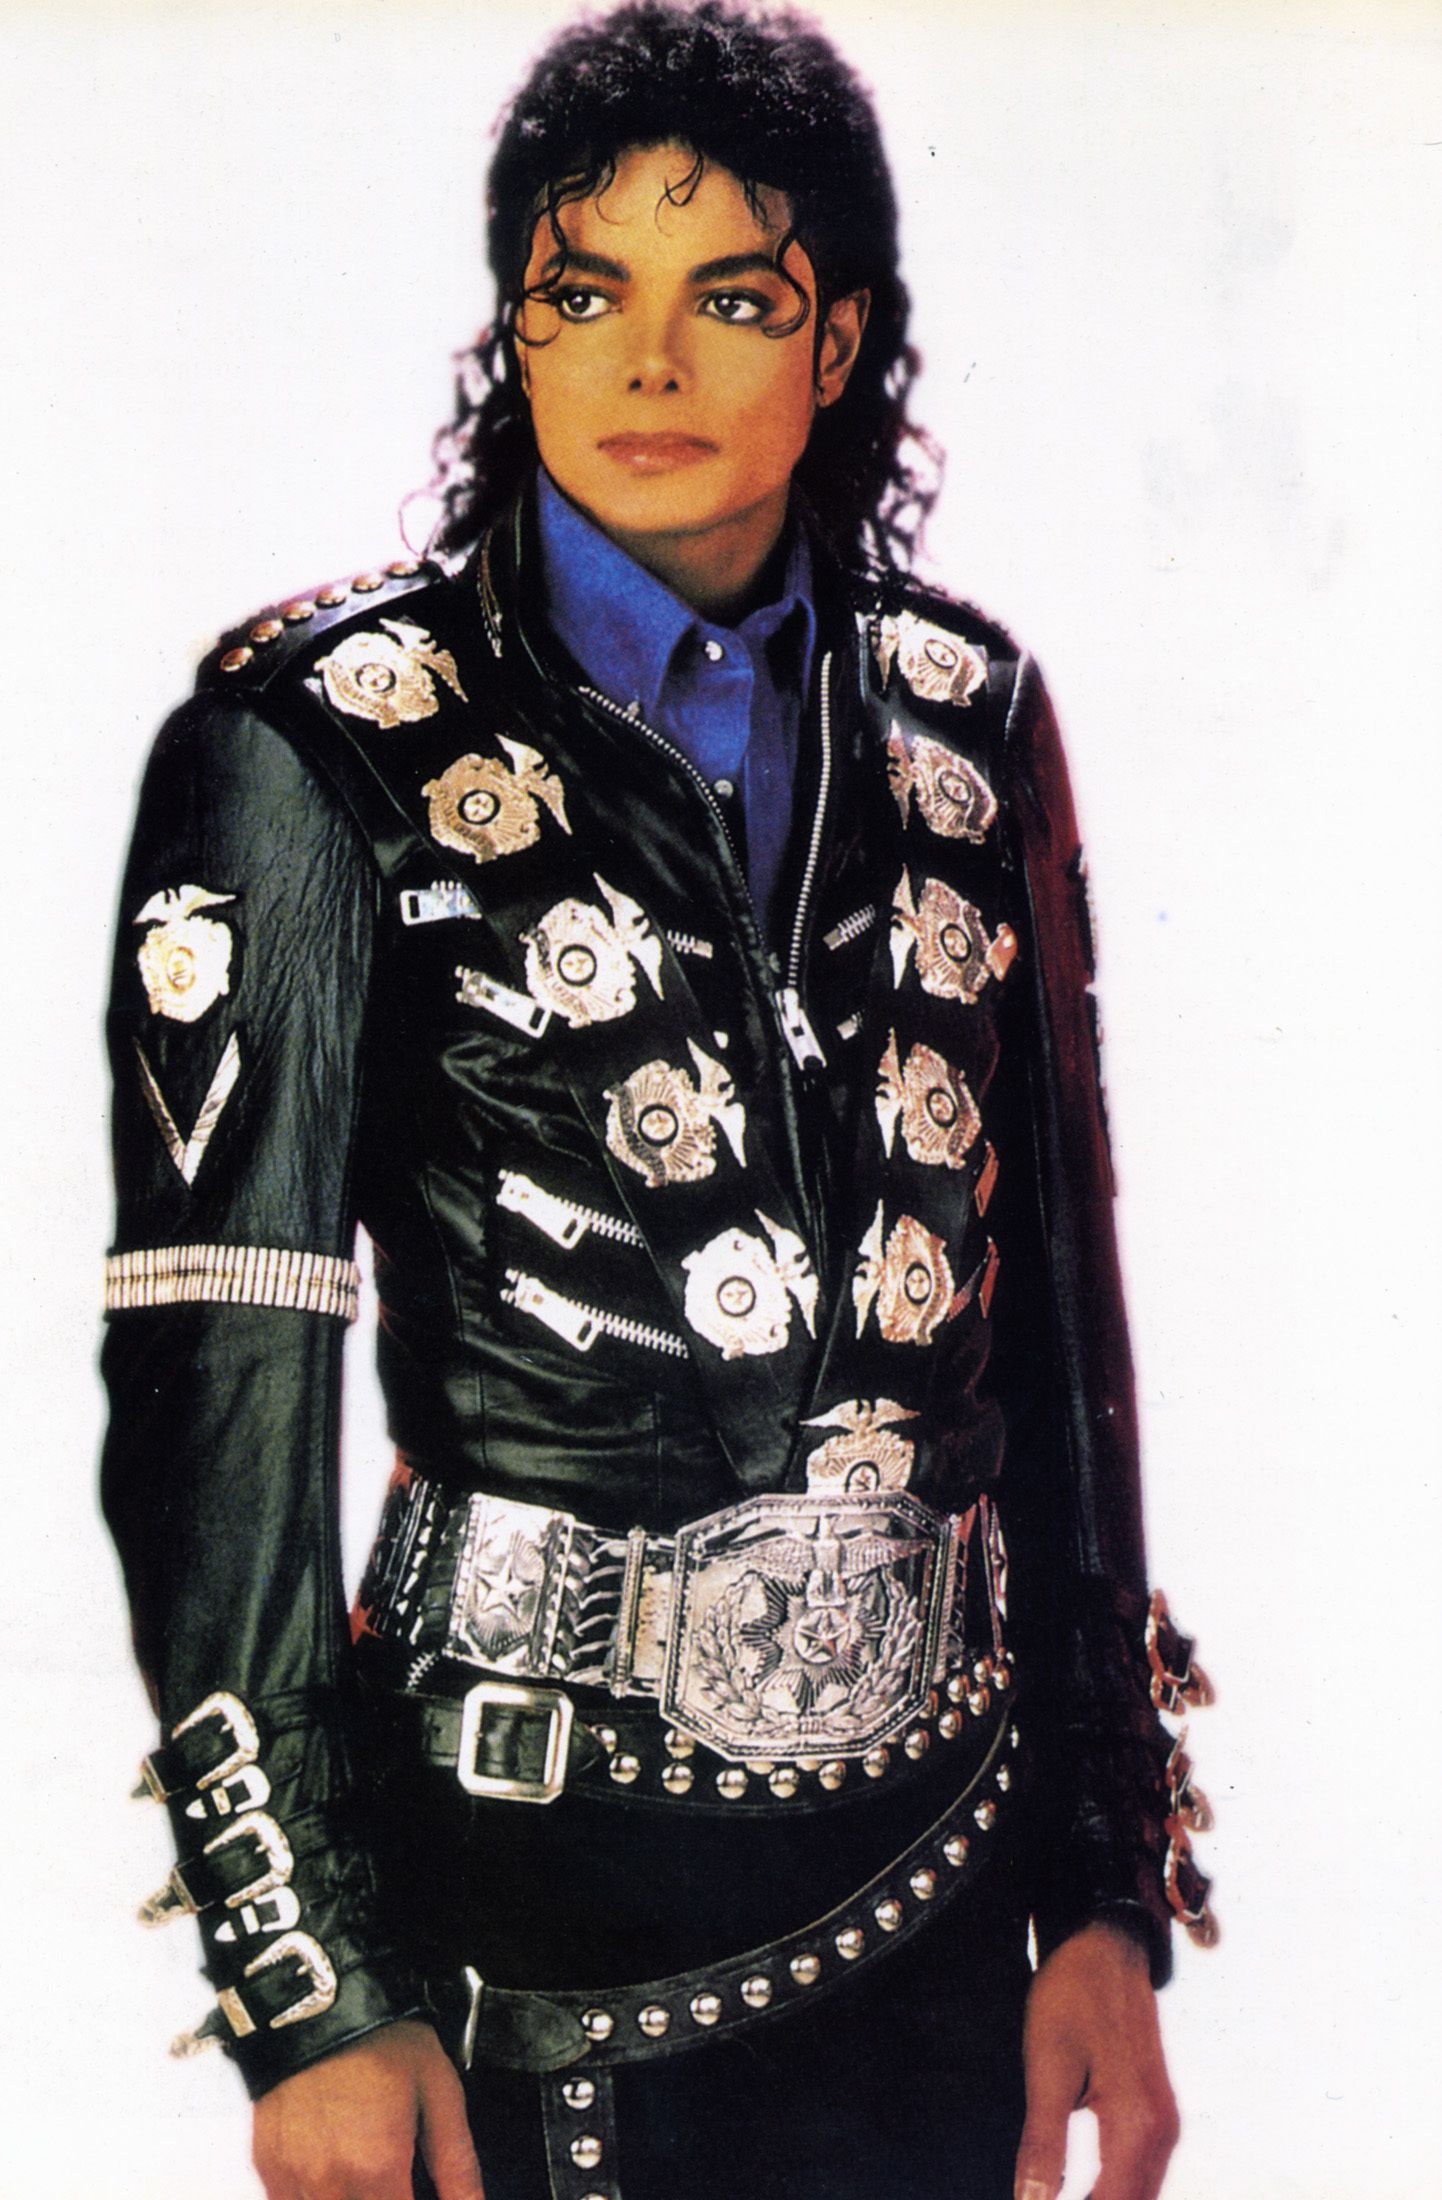 find this pin and more on marvelous michaeljackson by yourva